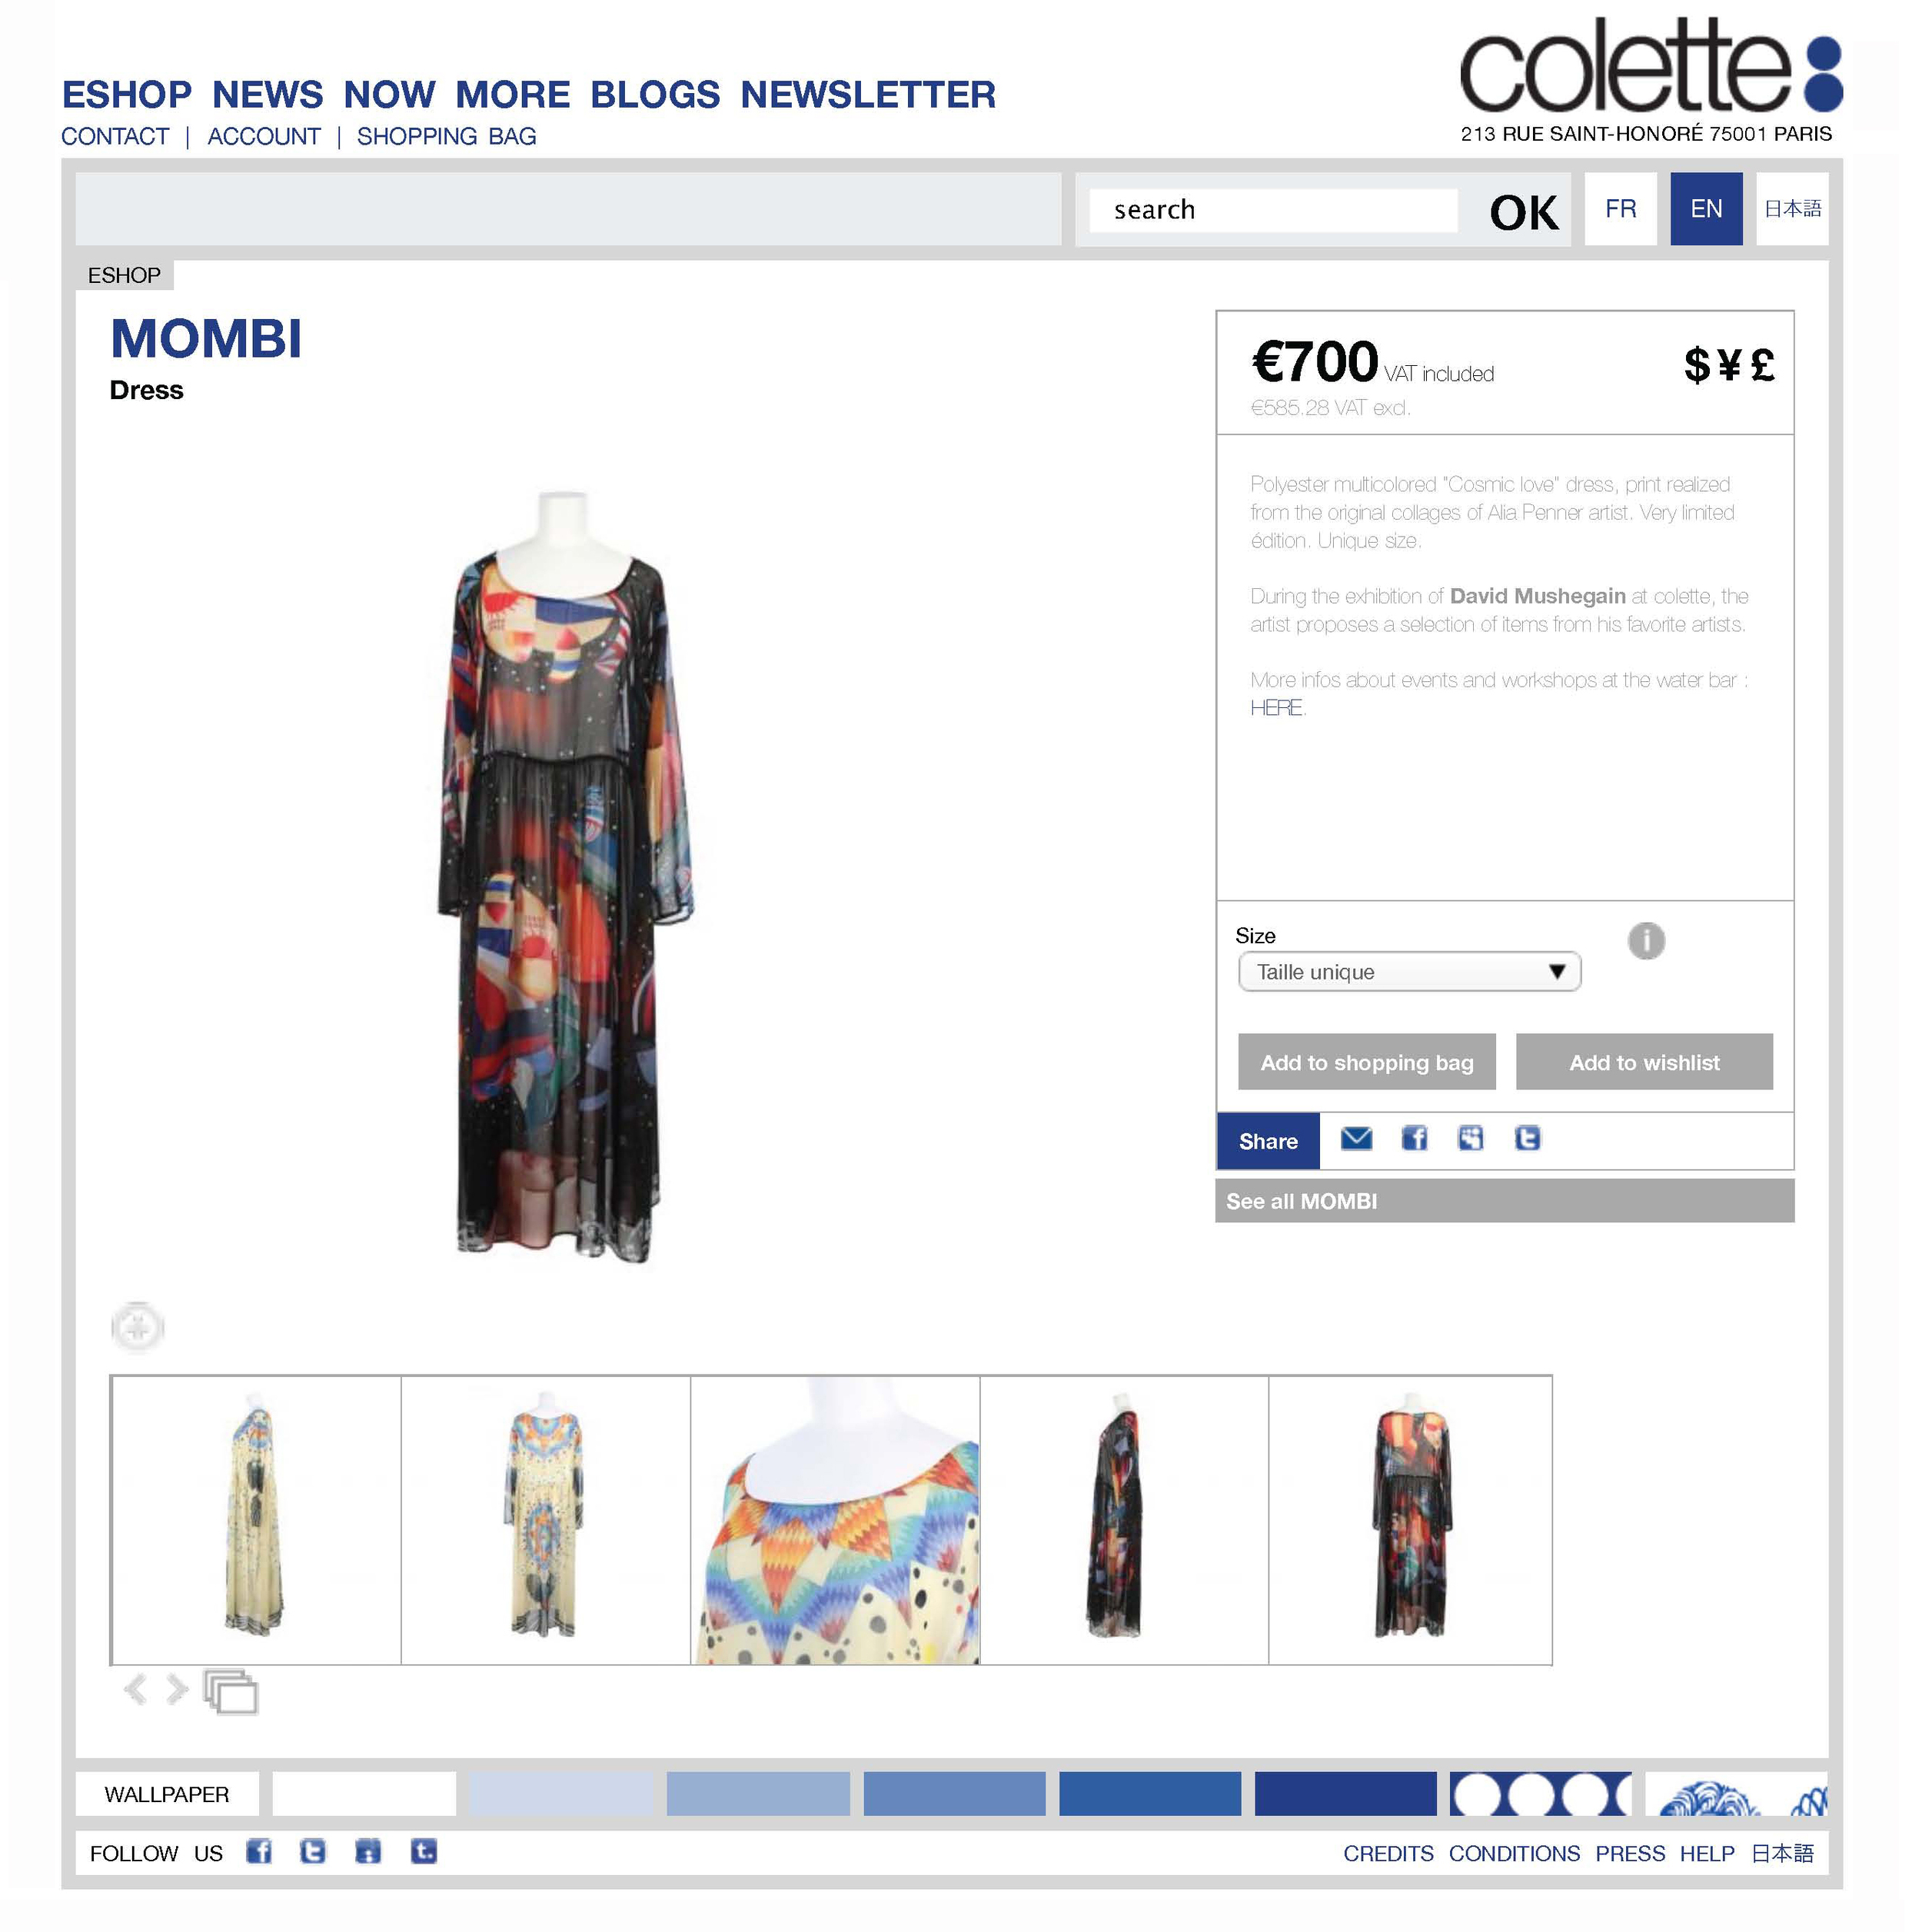 MOMBI - Dress - colette copy.jpg